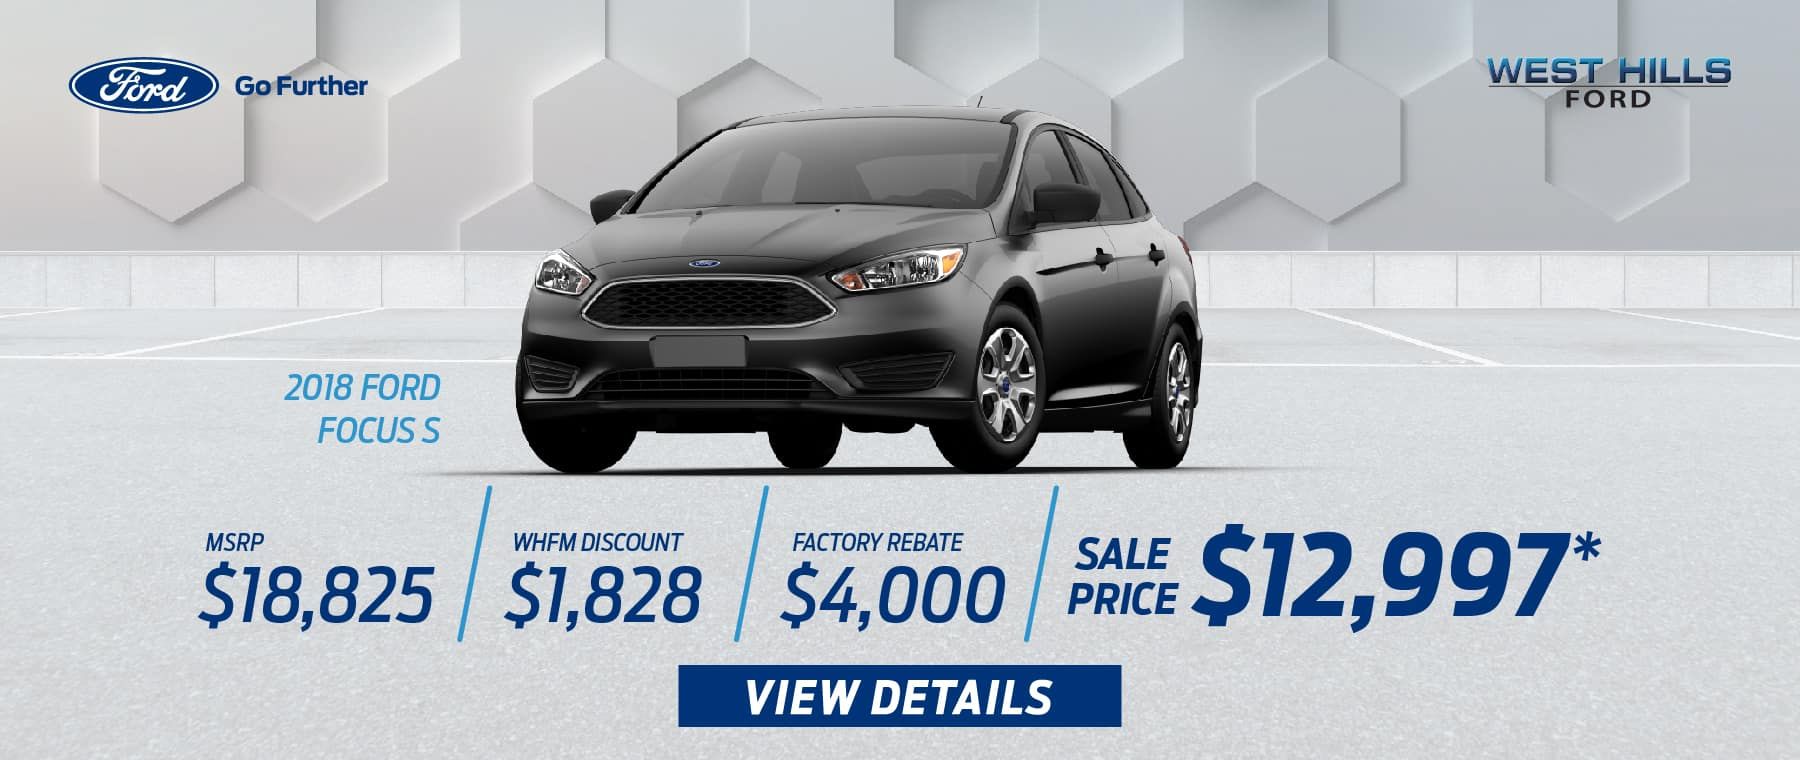 2018 FORD FOCUS S MSRP: $18,825 WHFM Discount: $1,828 Factory Rebate: $4,000 Sale Price: $12,997   *Offer valid on 2018 FORD FOCUS S. VIN: 1FADP3E29JL304801. Subject to credit approval. WHFM Discount: $1,828. Factory Rebate: $4,000, Sale Price: $12,997, not all will qualify. Based on approval of program ID 13374.Down payment and monthly payment may vary. Excludes state and local taxes, tags, registration, title, insurance and dealer charges. See dealer or go to ford.com for qualifications and complete details. A negotiable dealer documentary service fee of up to $150 may be added to the sale price or capitalized cost. Offer expires 1/31/19.